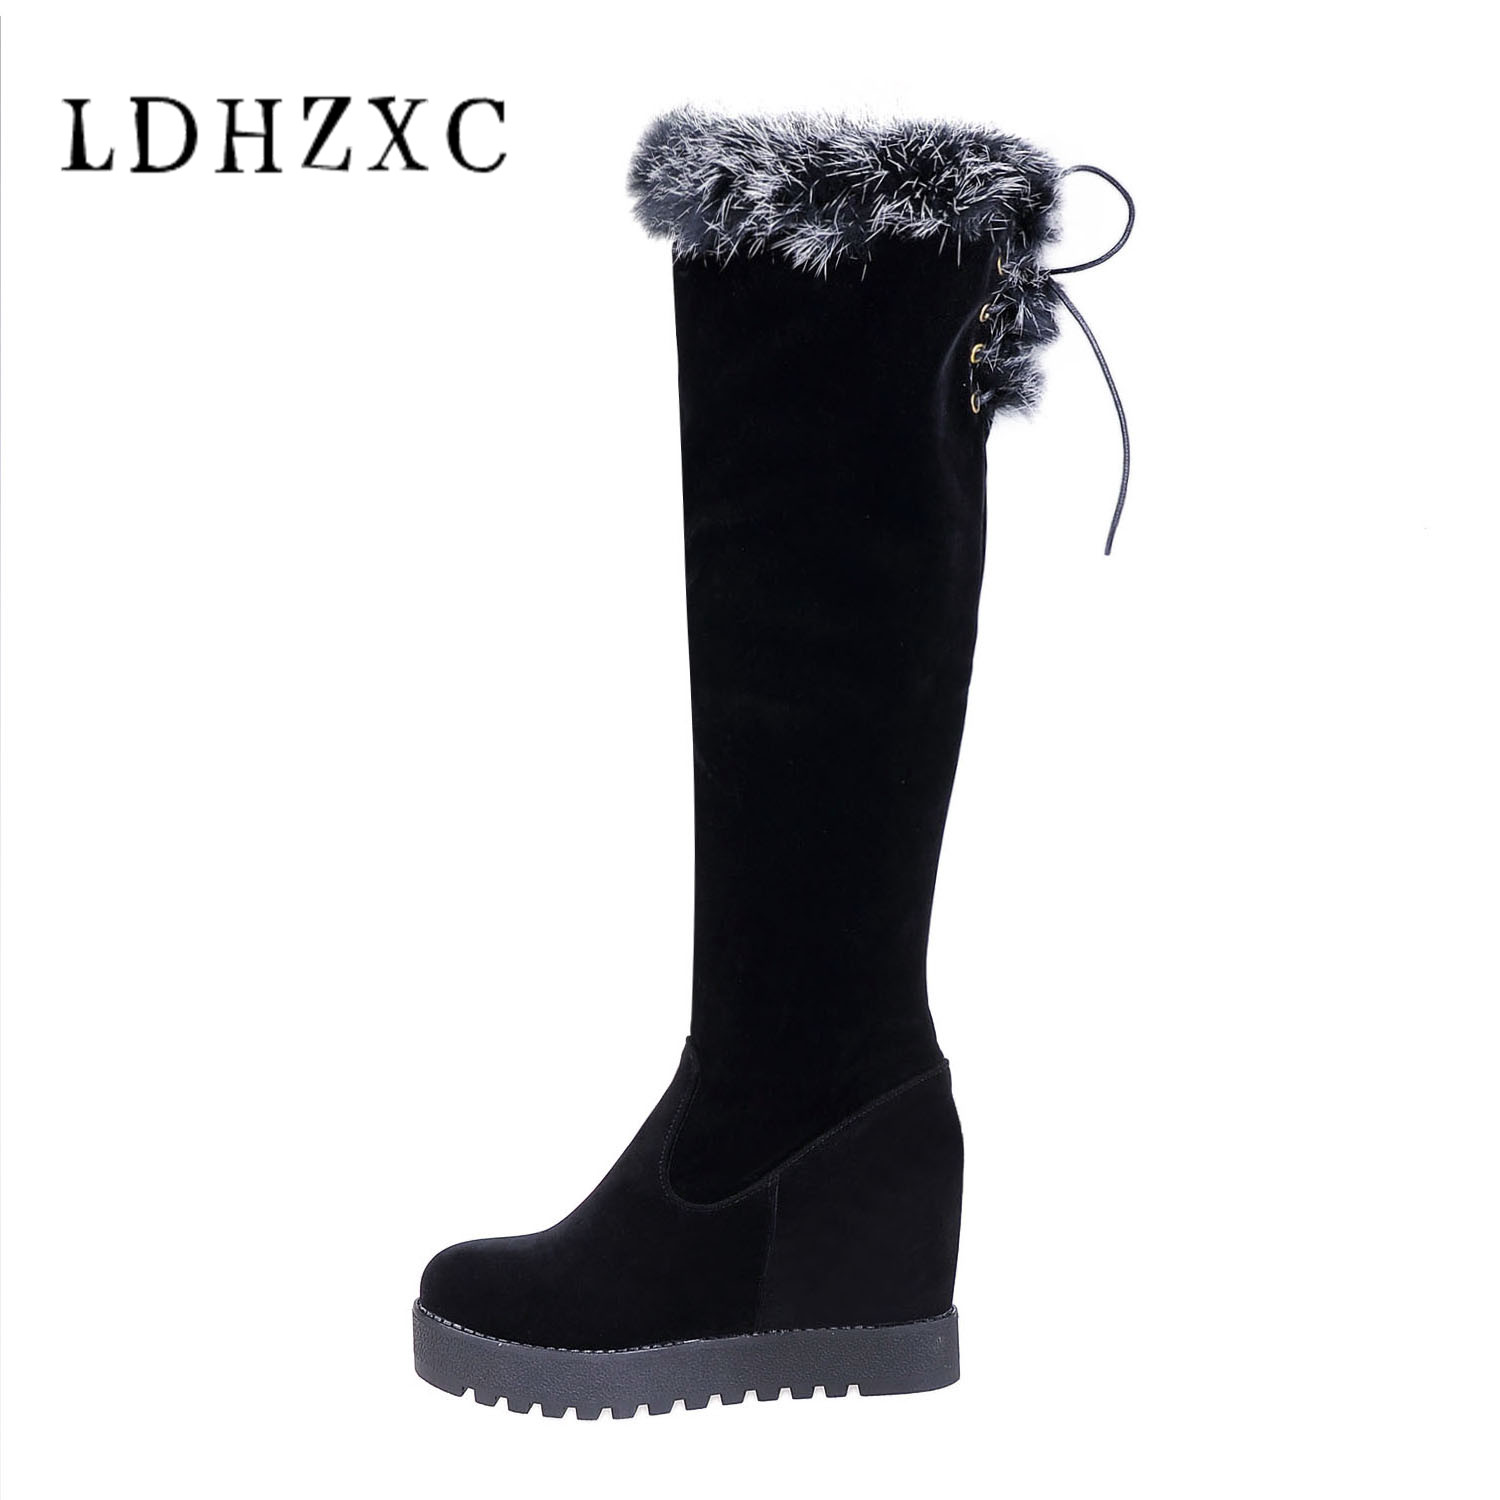 LDHZXC 2018 Hot Sale Add Plush Women snow Shoes Woman knee high Boots Woman Warm Winter Boots Large Sizes 35-43 waterproof все цены